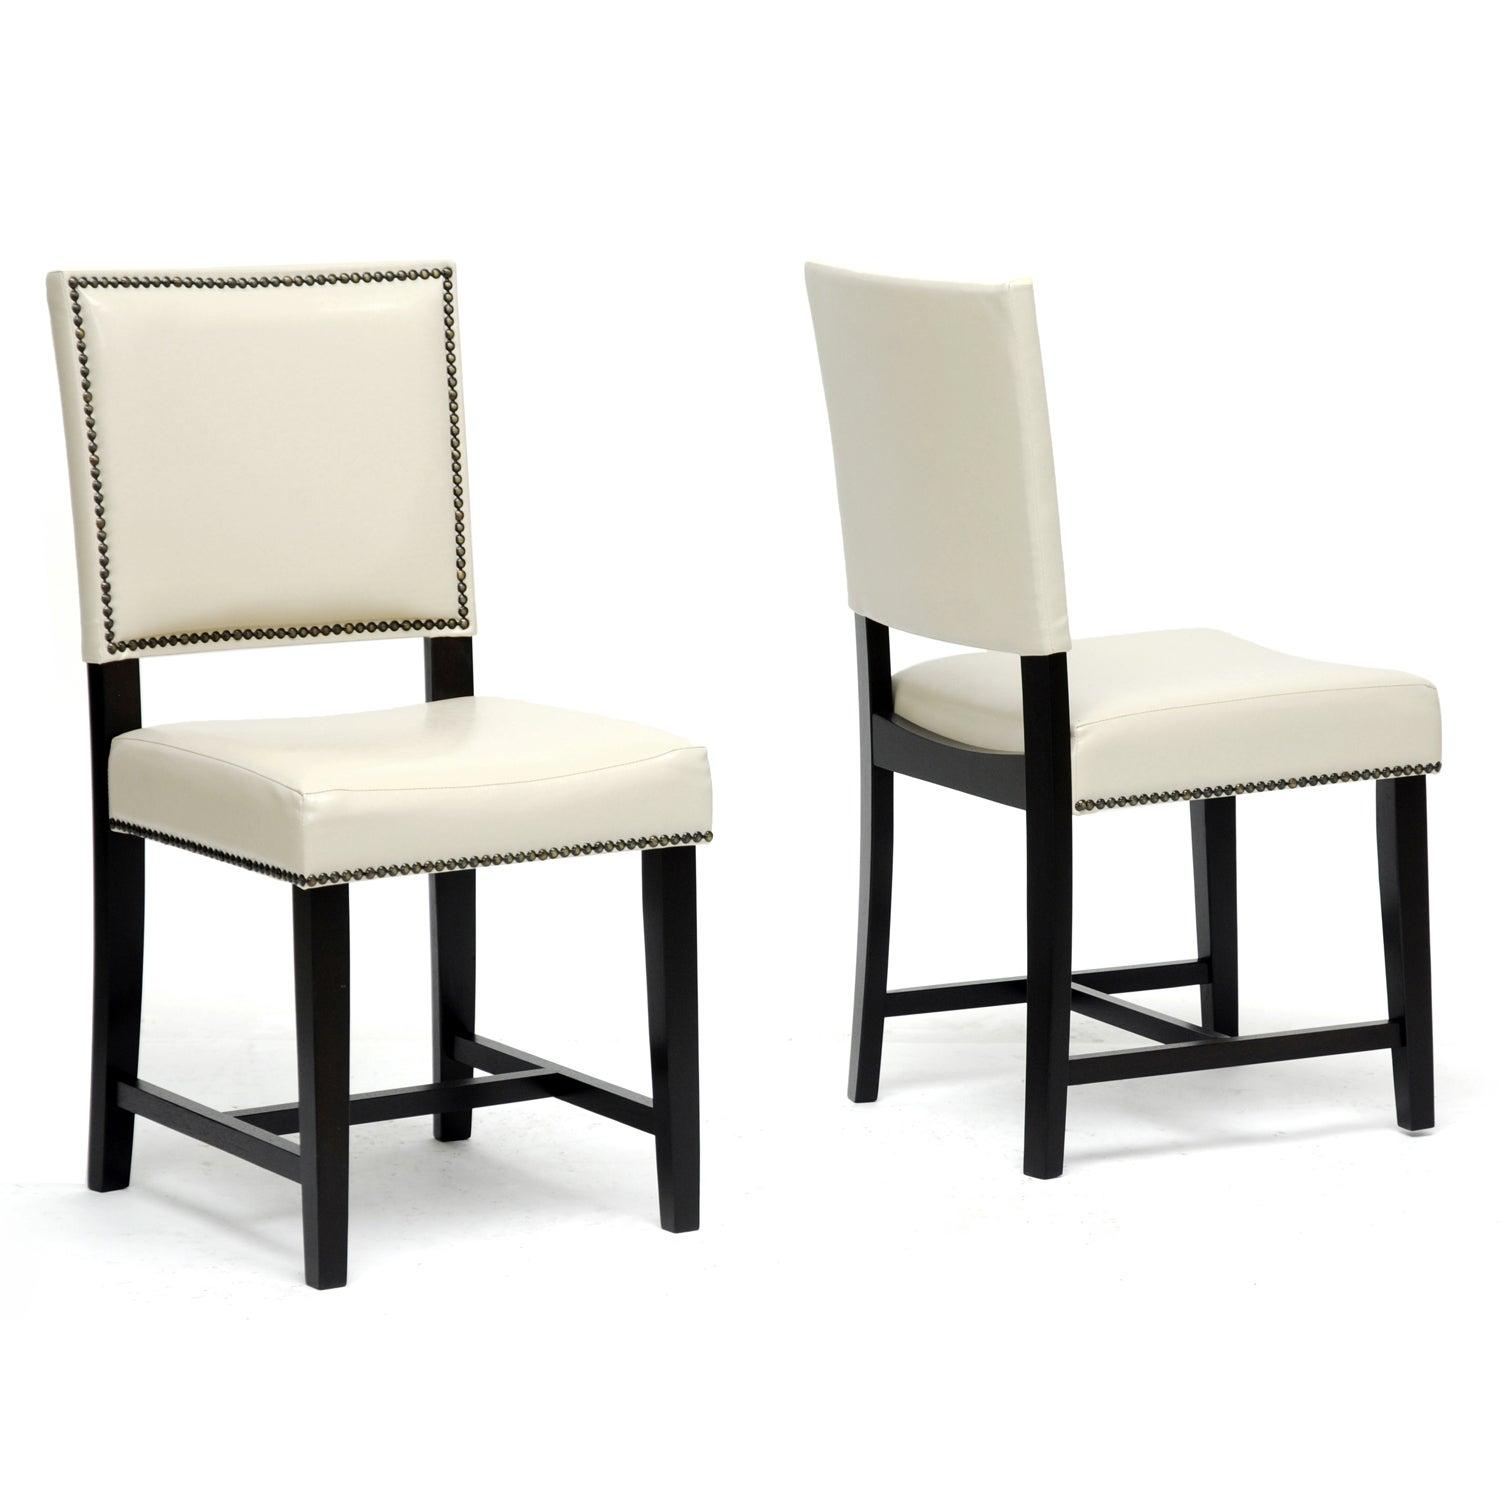 White Dining Chairs | Overstock.com: Buy Dining Room & Bar